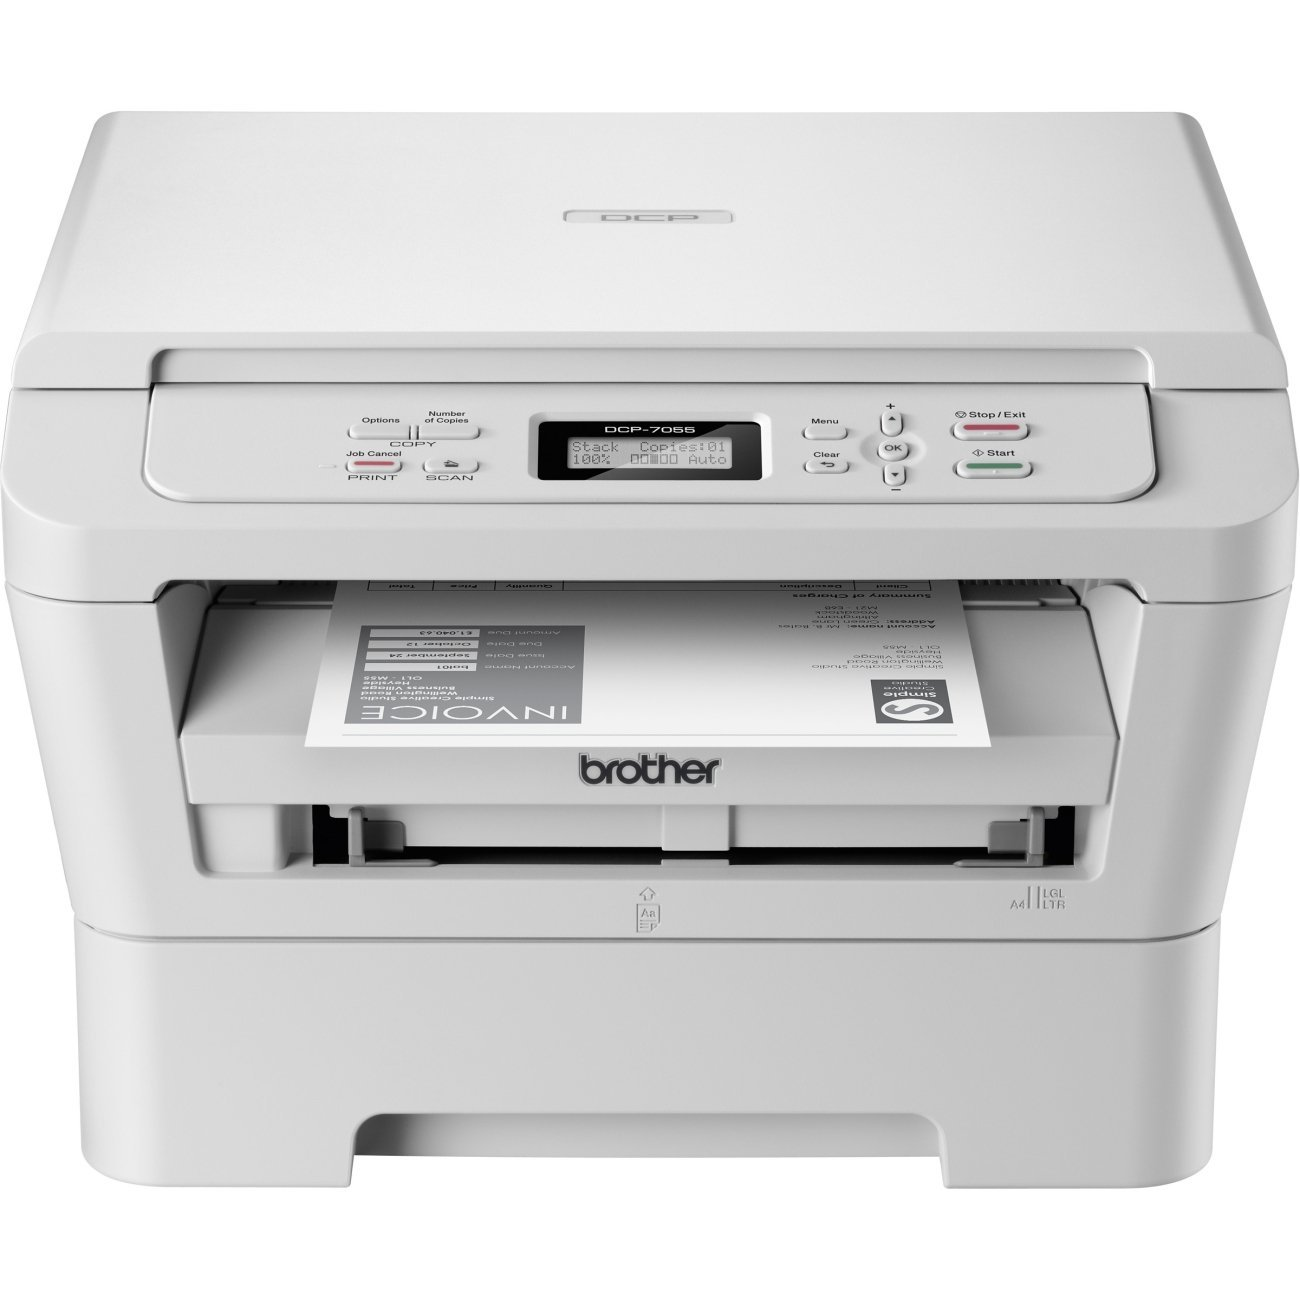 BROTHER DCP-7057R DRIVERS FOR WINDOWS 8